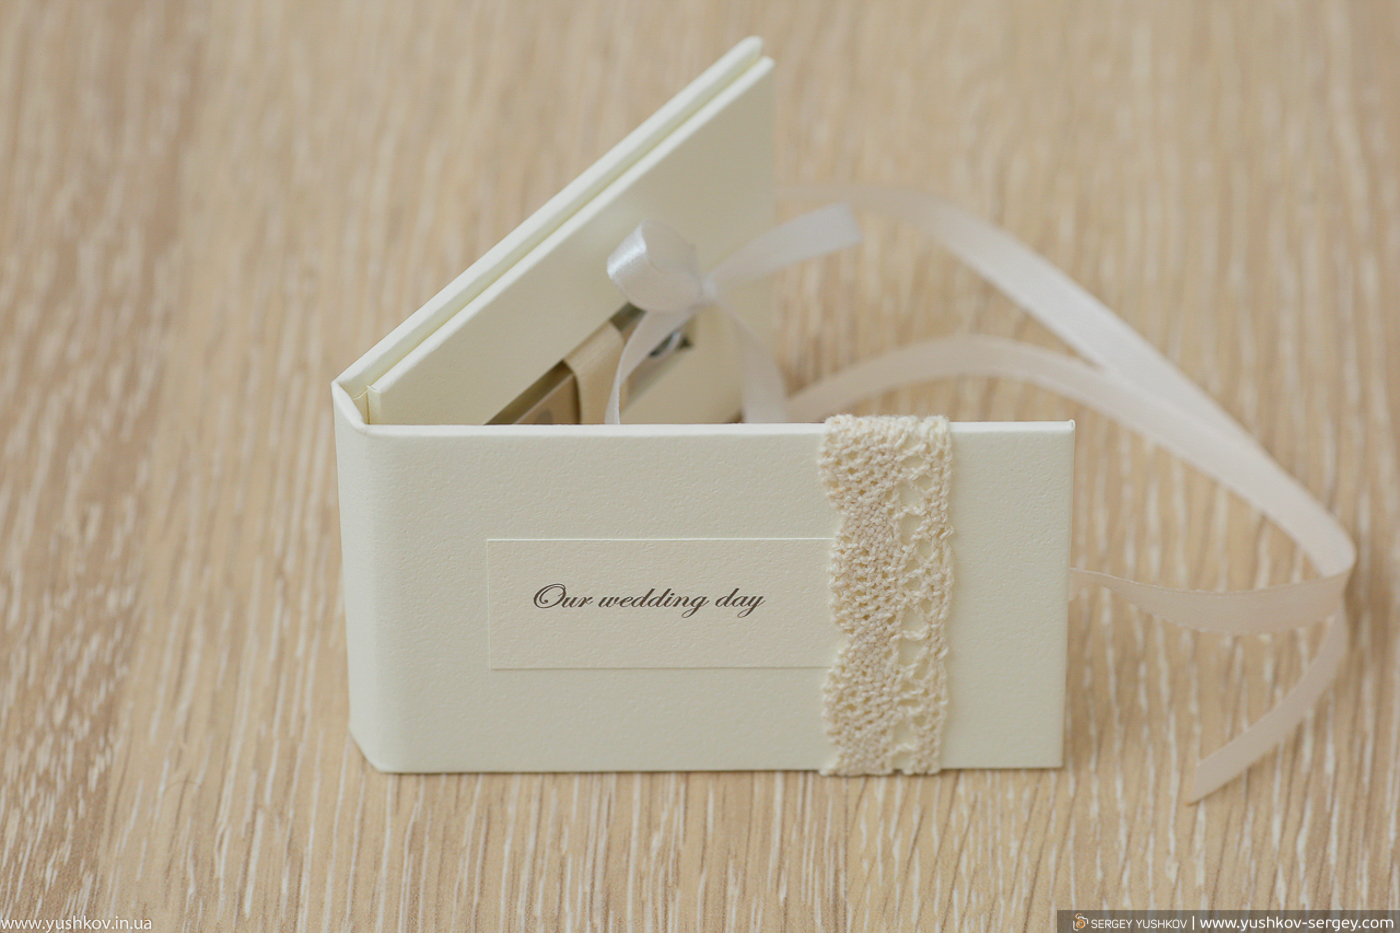 Wedding flash drives